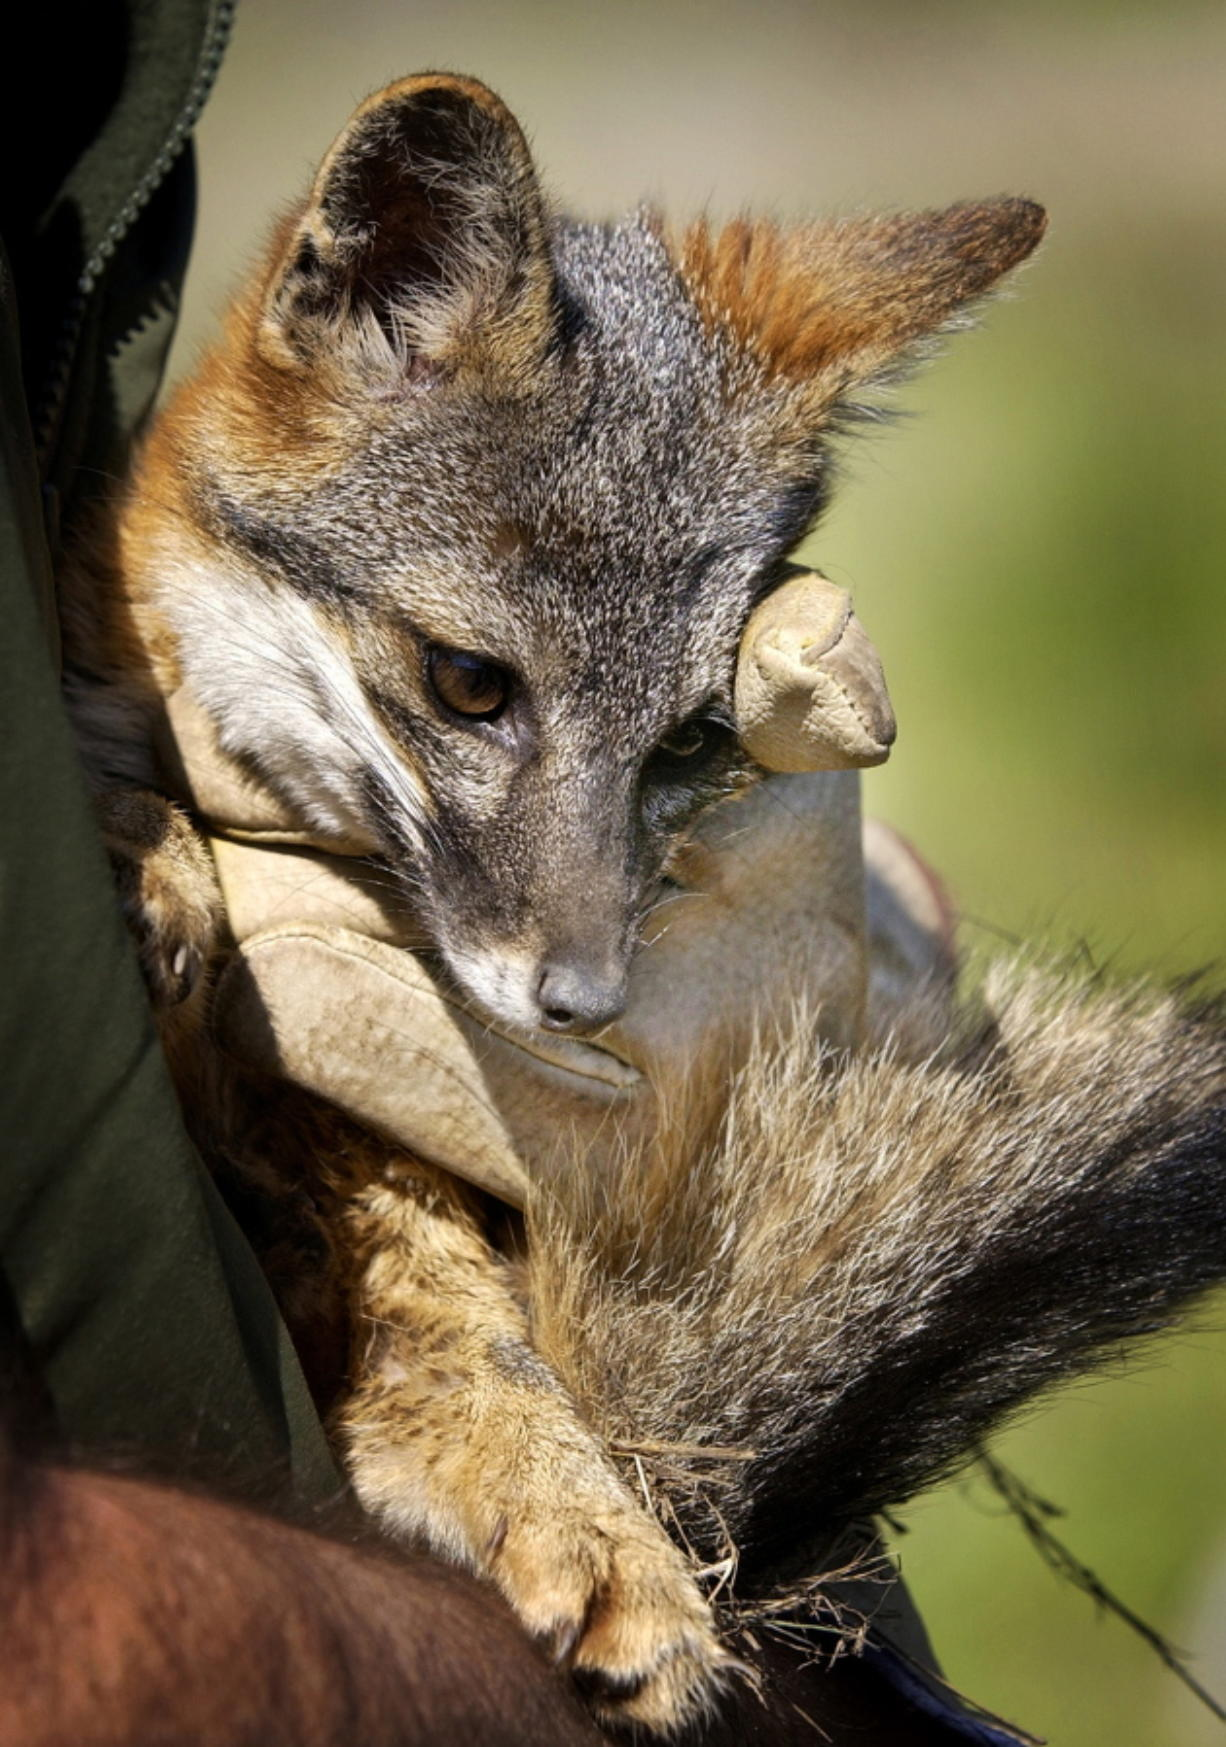 A Santa Cruz Island fox bred in captivity is held by a wildlife biologist for the National Park Service, on Santa Cruz Island in Channel Islands National Park, Calif.